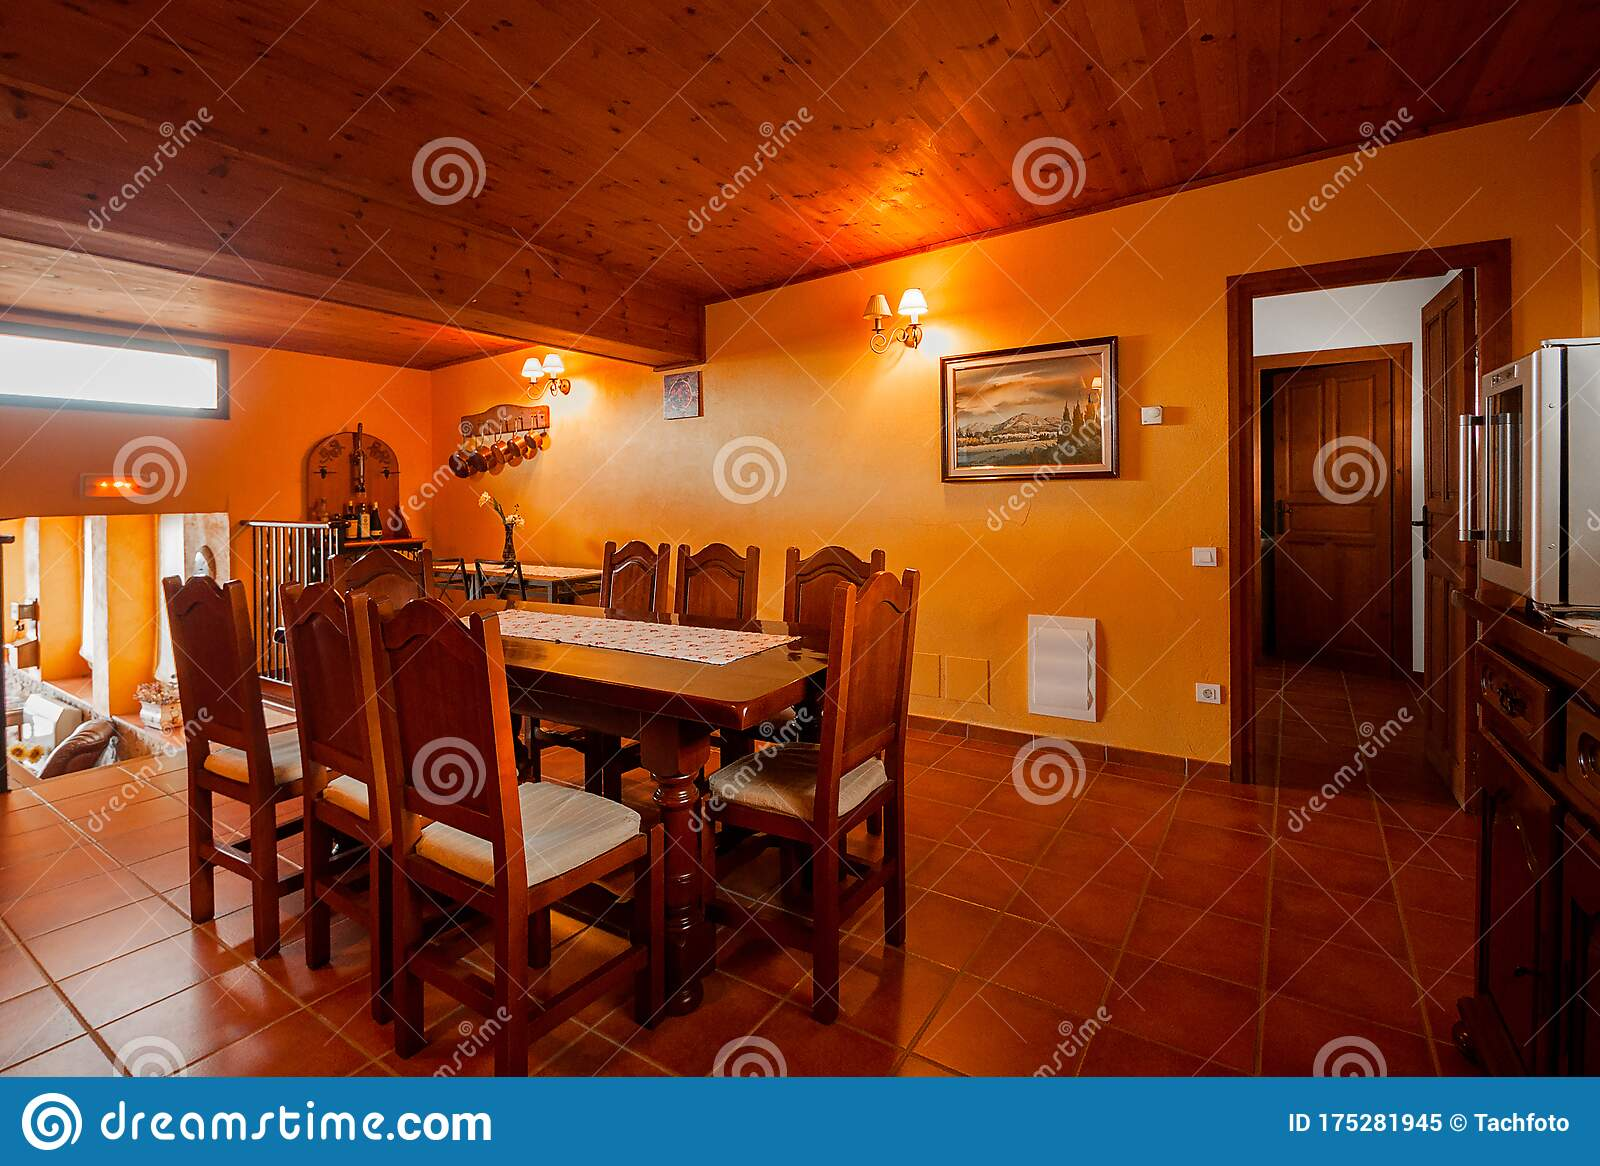 Nice Warm Interior Of Dining Room With Large Wooden Table And Chairs In A Rustic Style Country House Or Hotel Wooden Beams And Stock Image Image Of Design Living 175281945